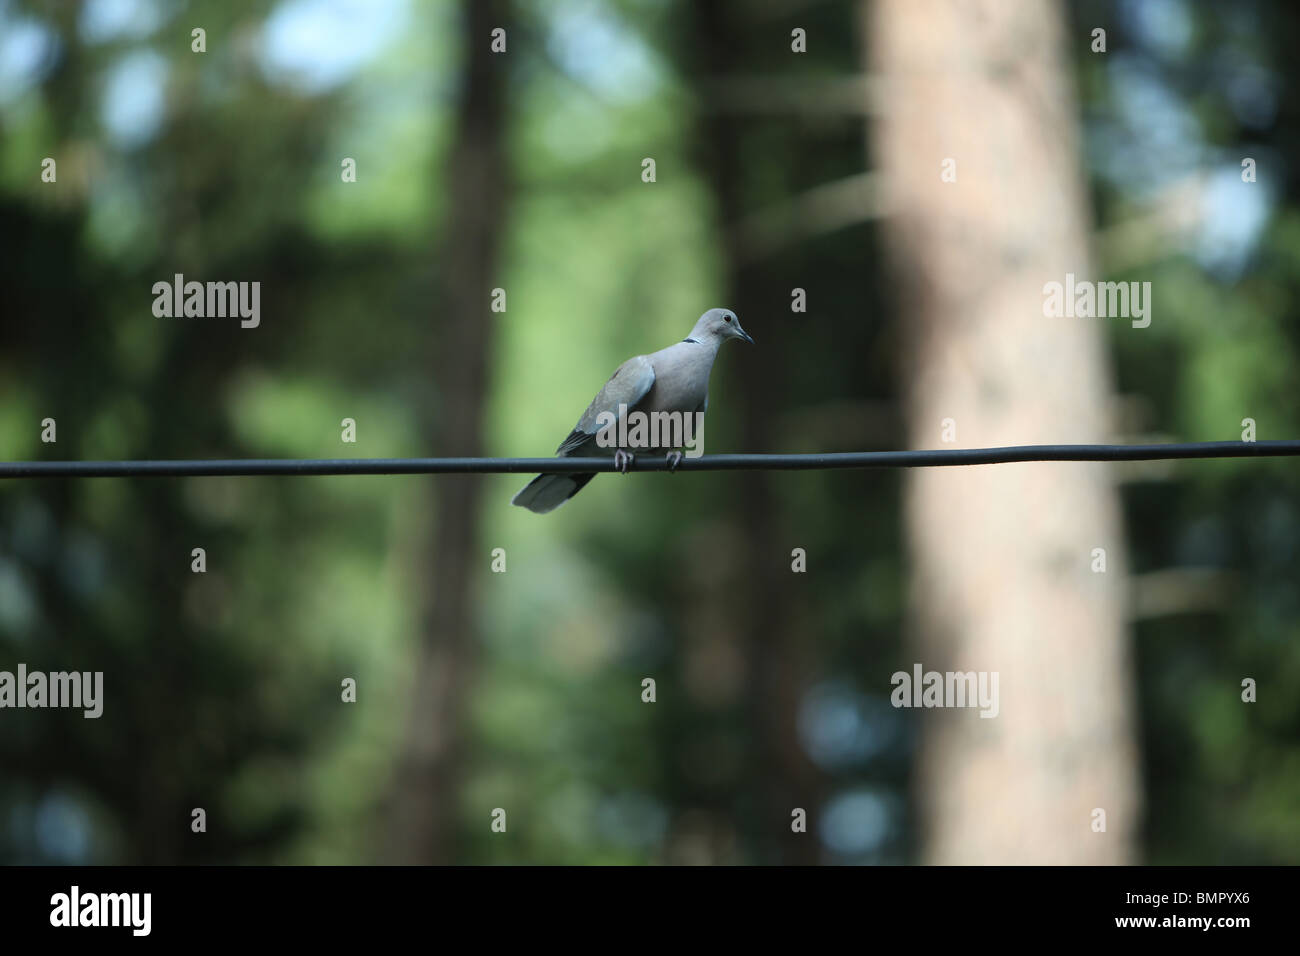 One 1 pigeon bird on wire unfocused background stand standing still balance middle grey animal fly blur soft wait - Stock Image